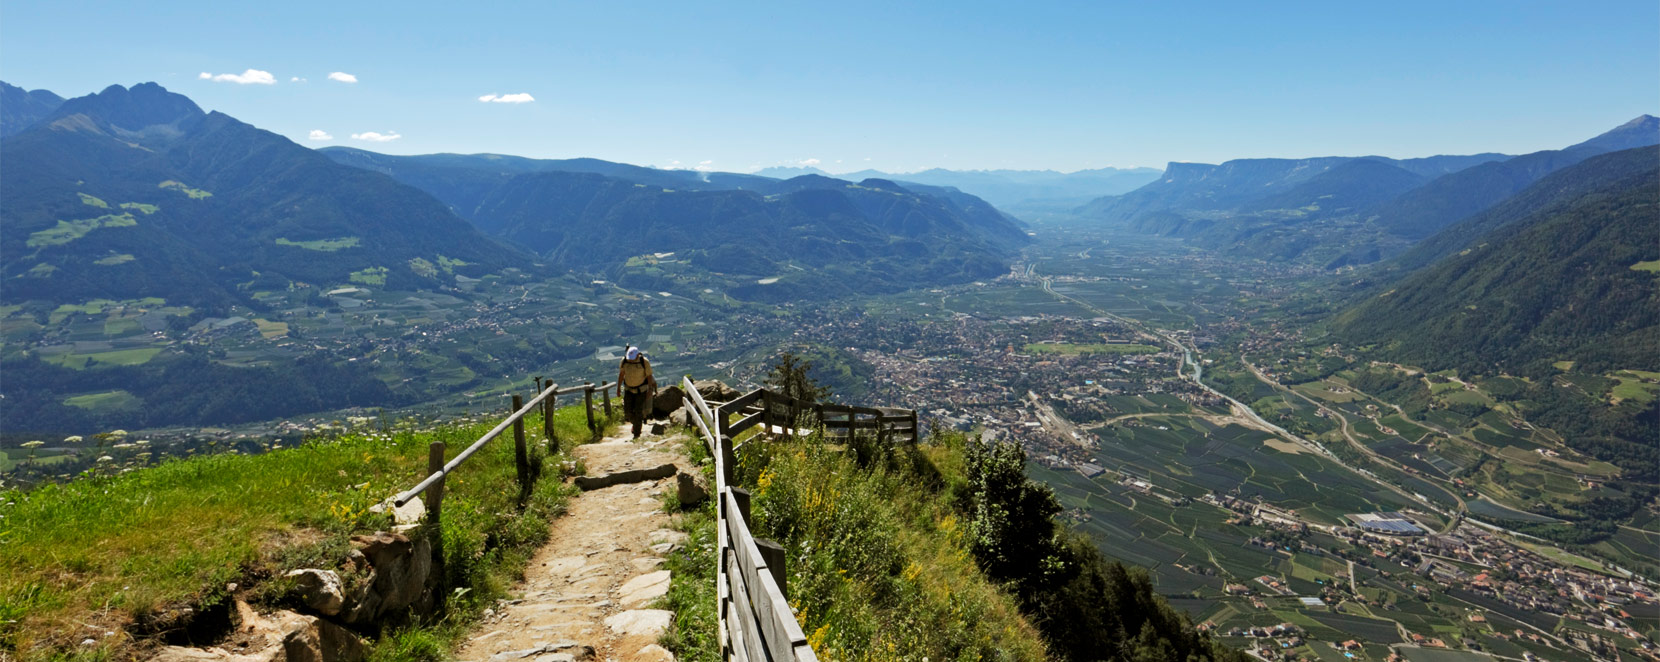 Active holiday Merano and surrounding